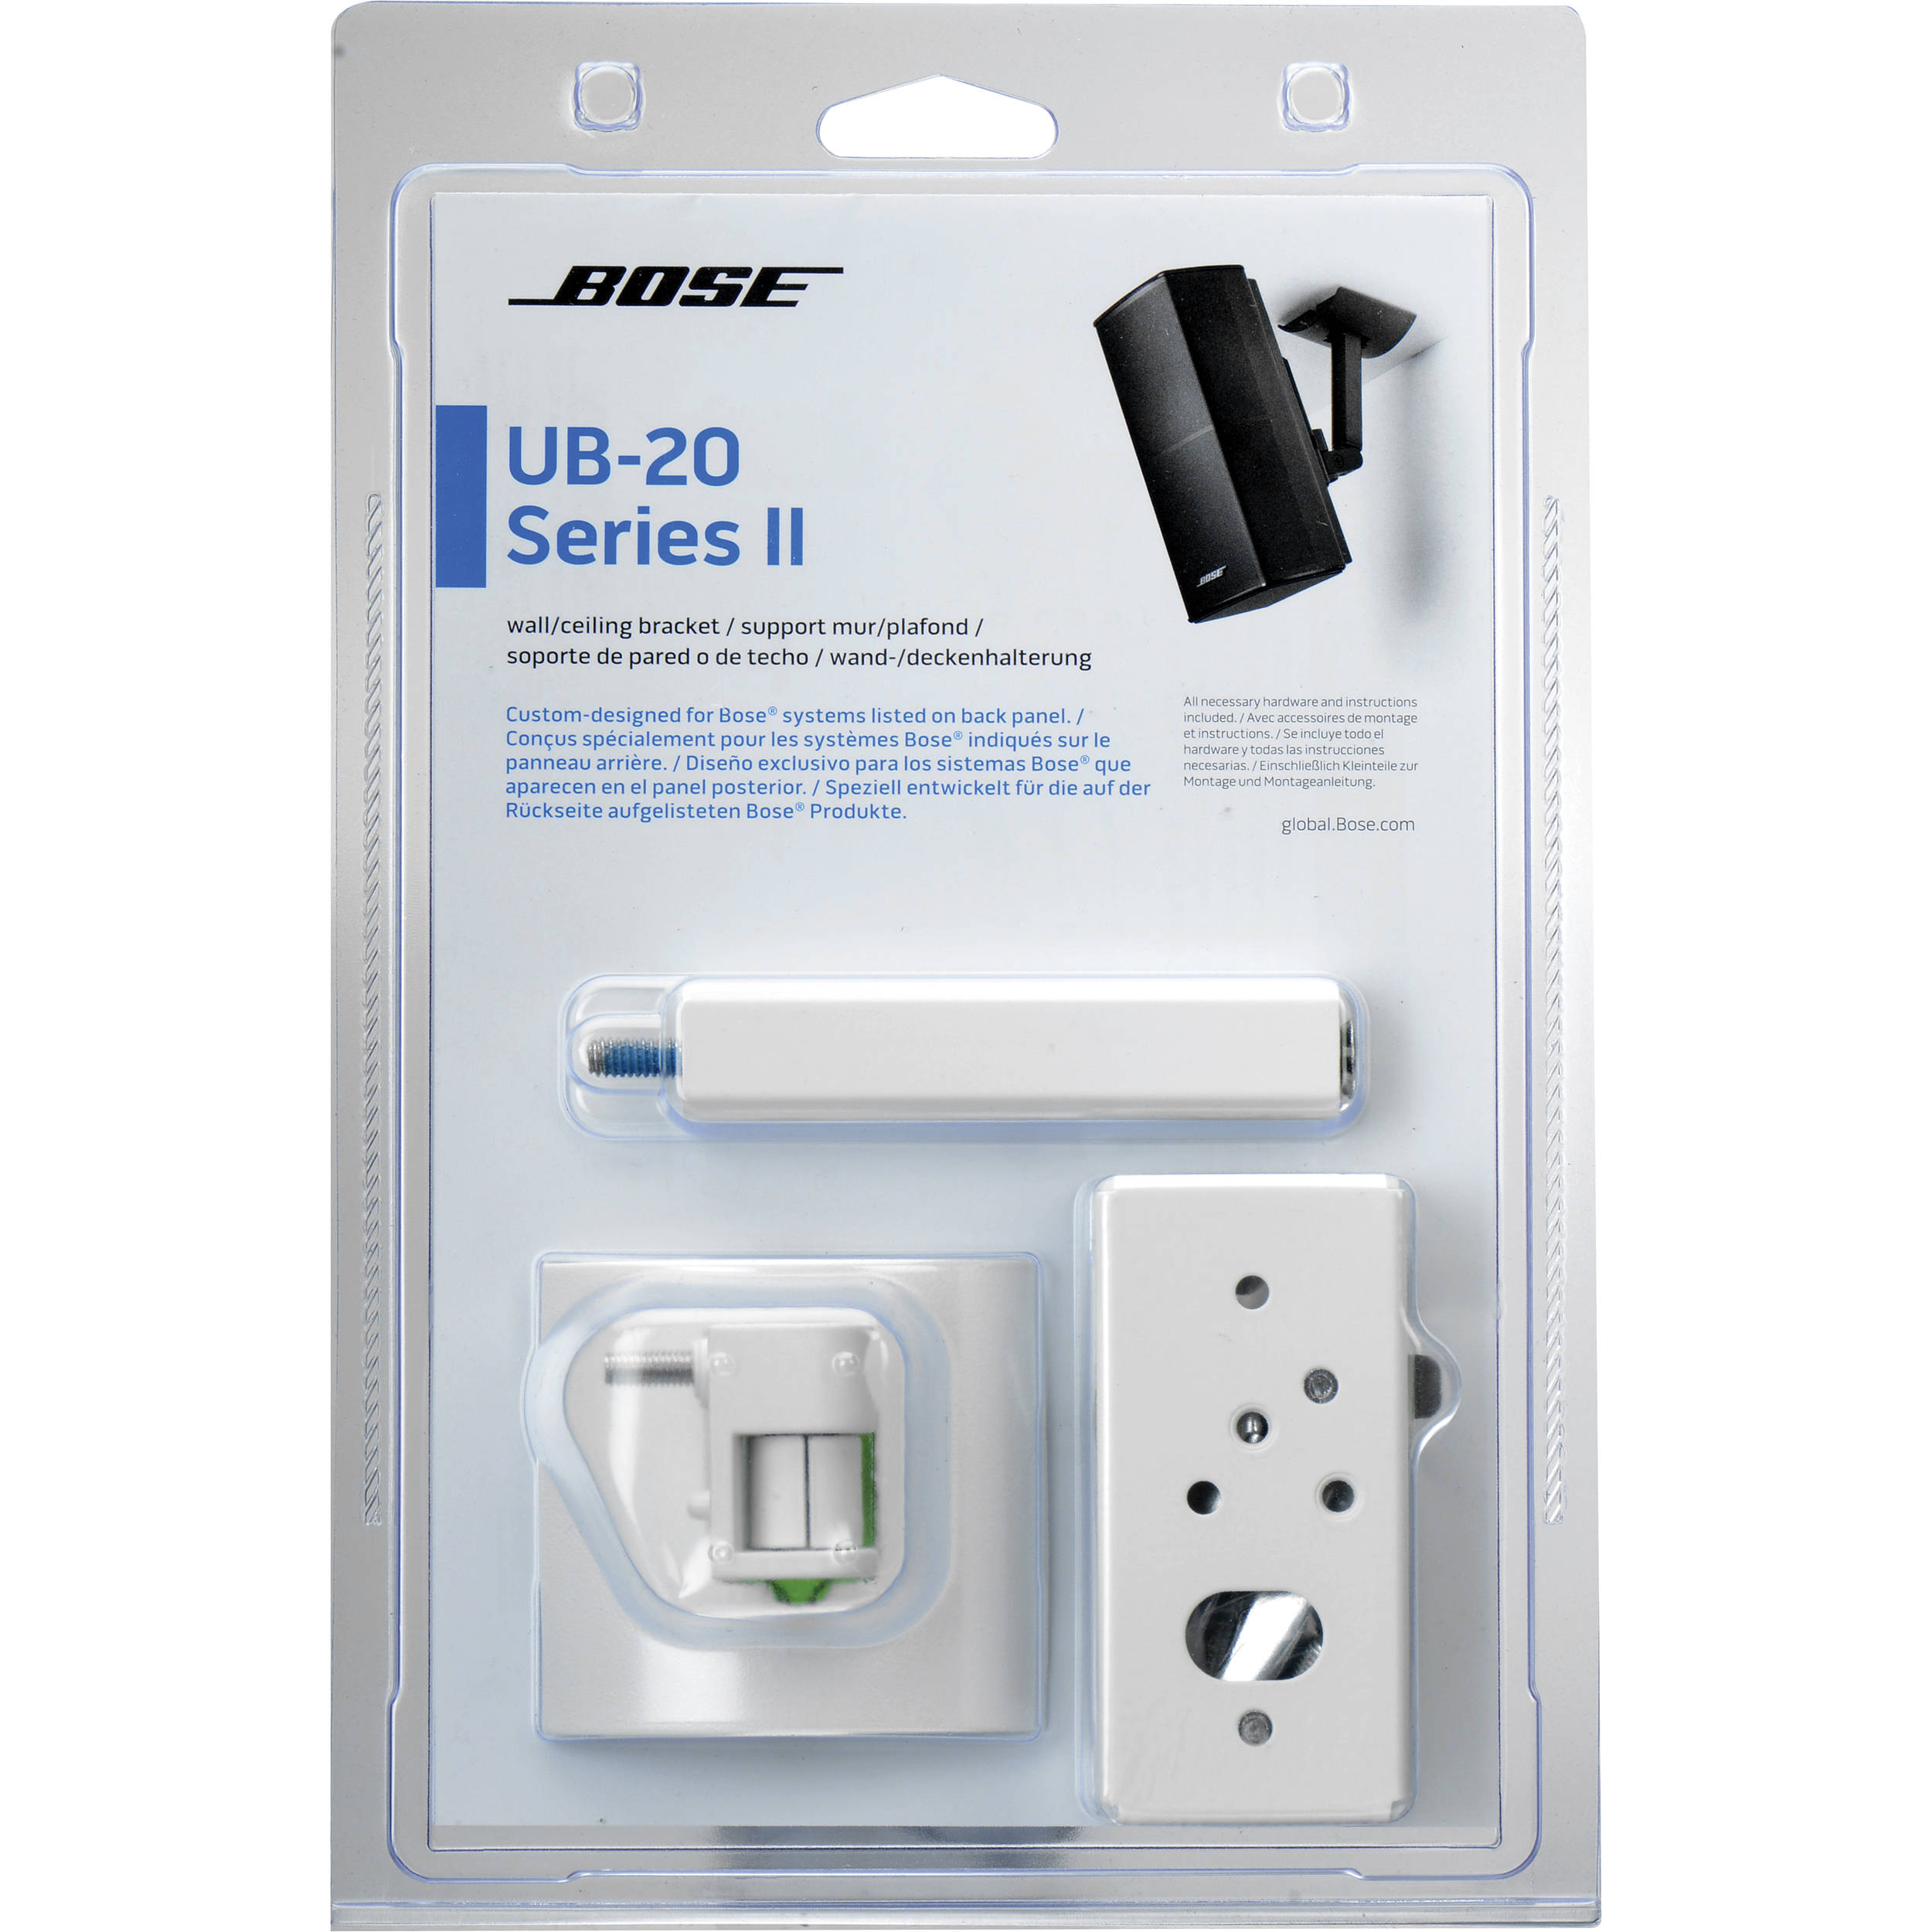 Bose ub 20 series ii wall ceiling bracket white 722141 0020 for Montage stand